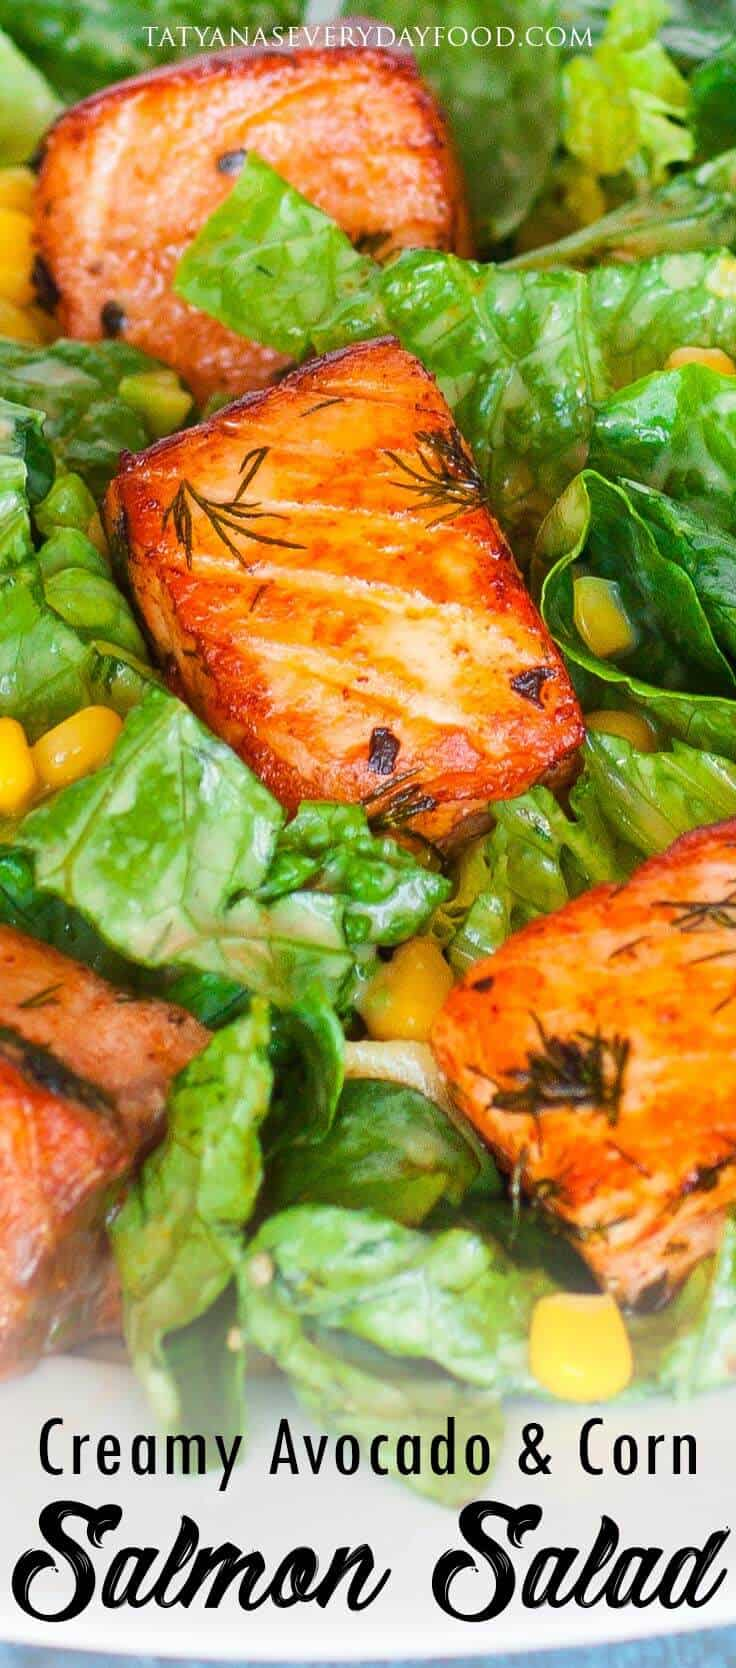 Creamy Avocado Salmon Salad video recipe